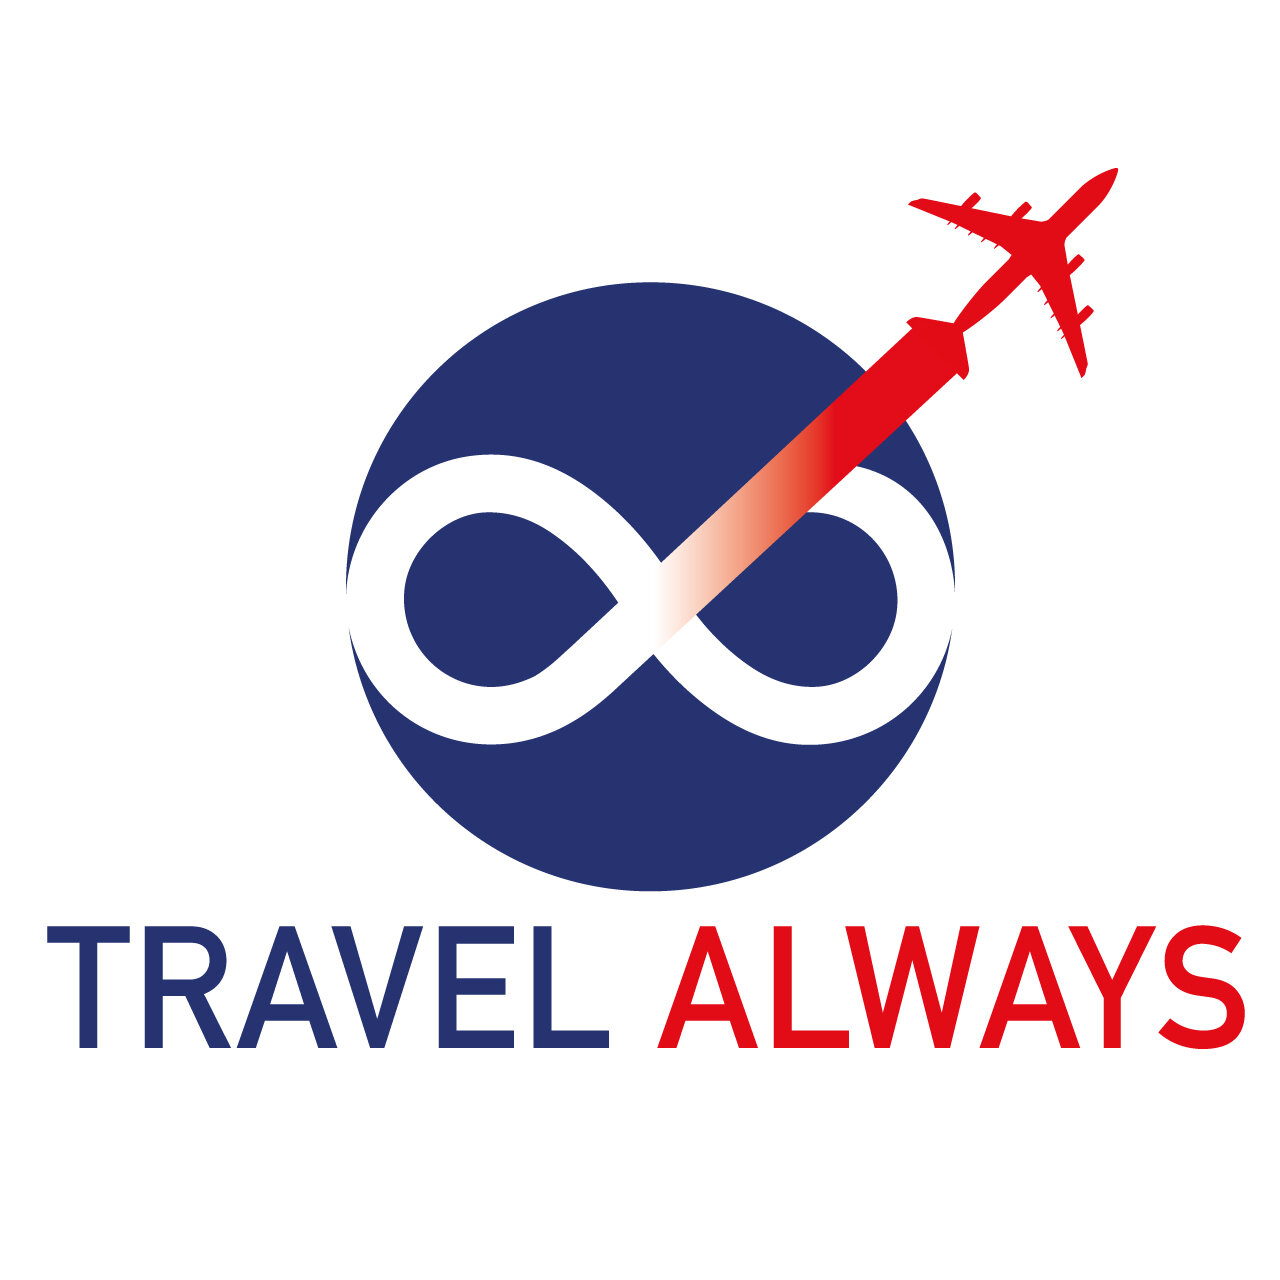 Travelalways